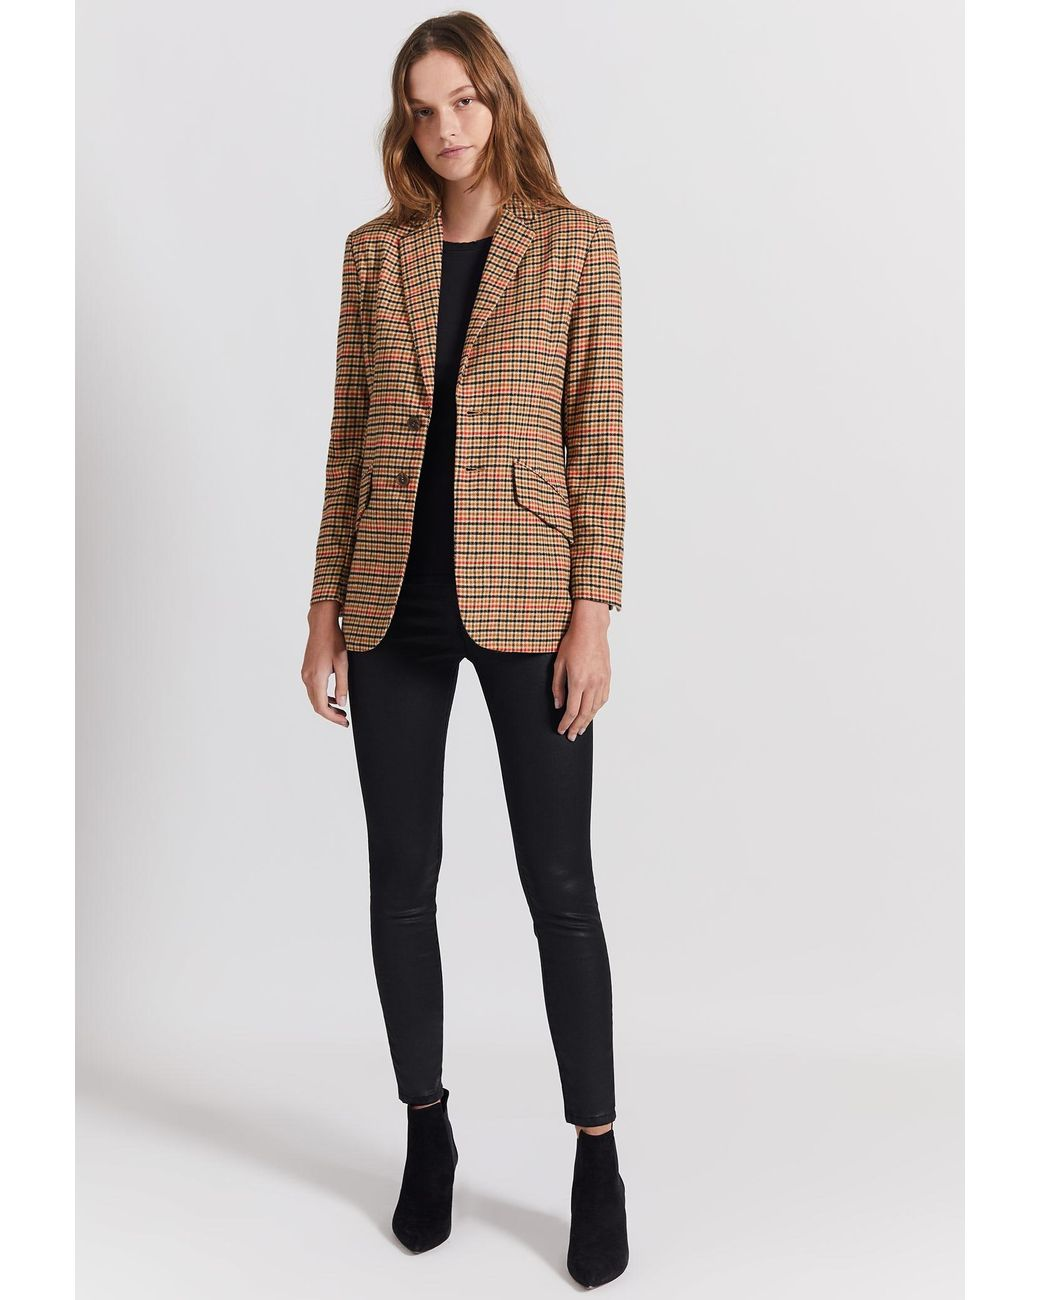 The Date Night Blazer